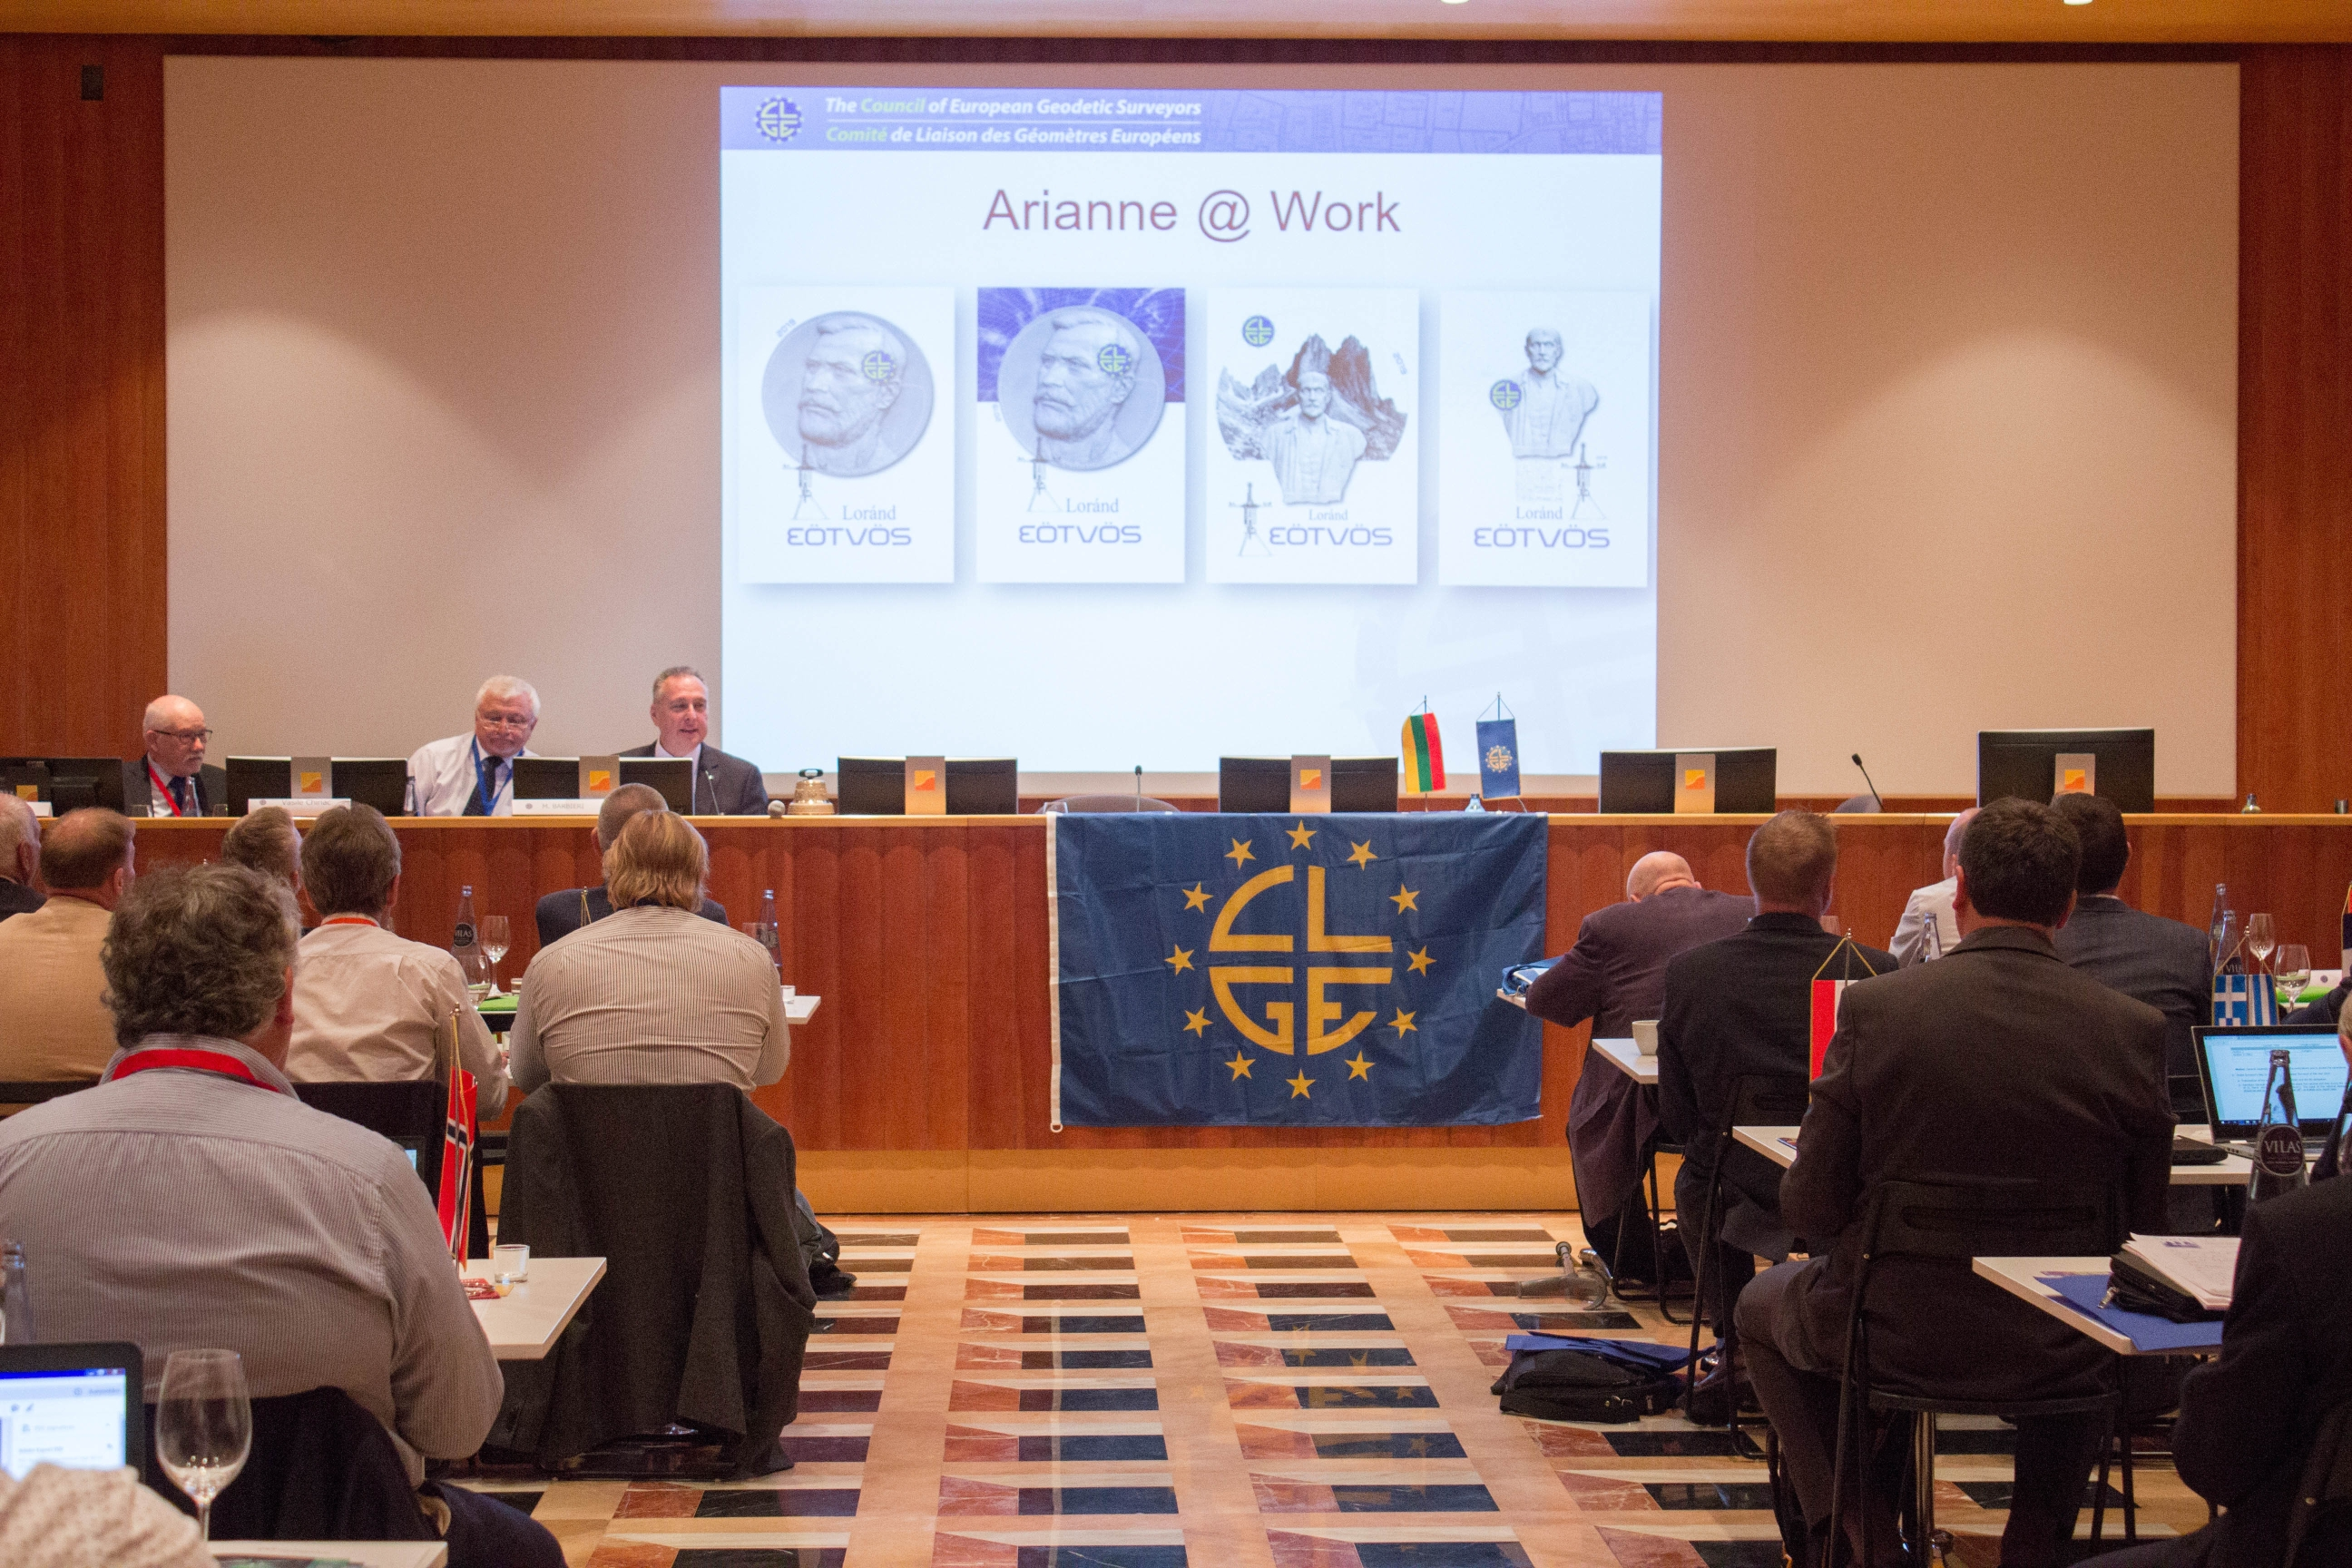 clge-general-assembly-barcelona-2018_44517980304_o.jpg